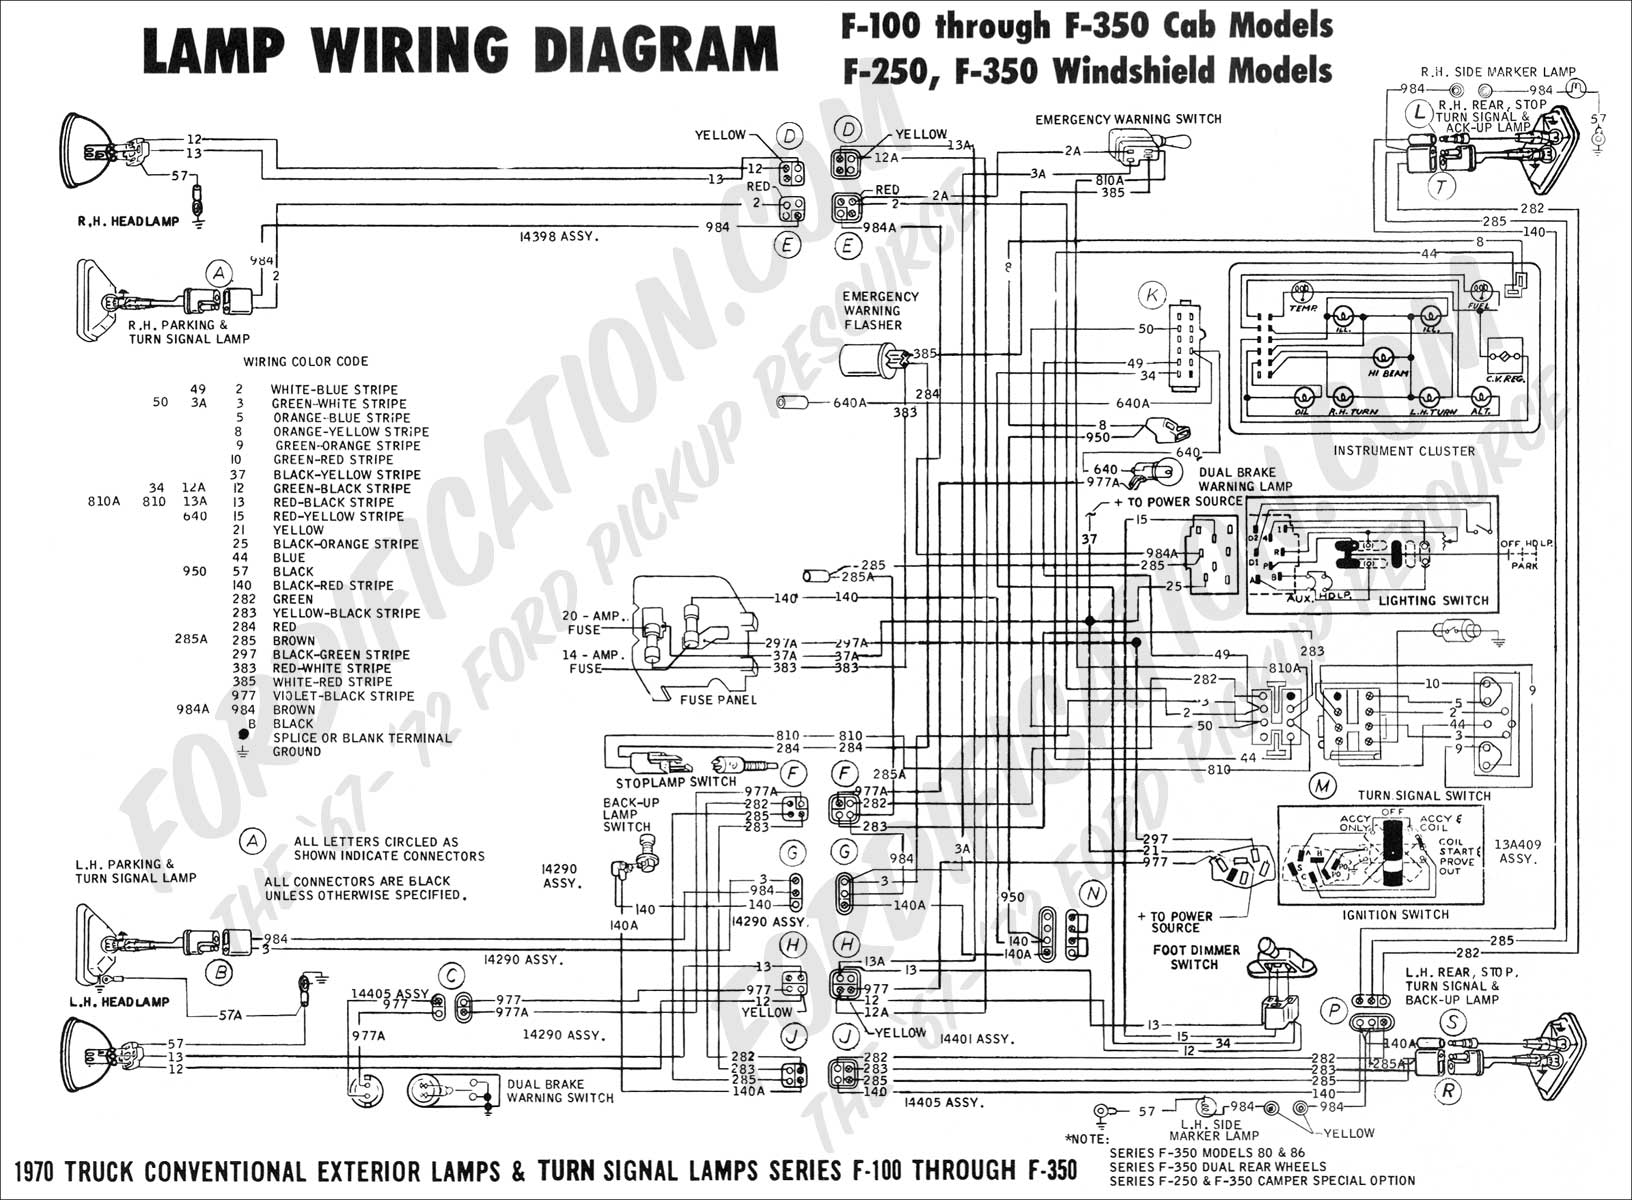 wiring diagram_70ext lights01 ford truck technical drawings and schematics section h wiring 1972 ford f100 wiring harness at crackthecode.co